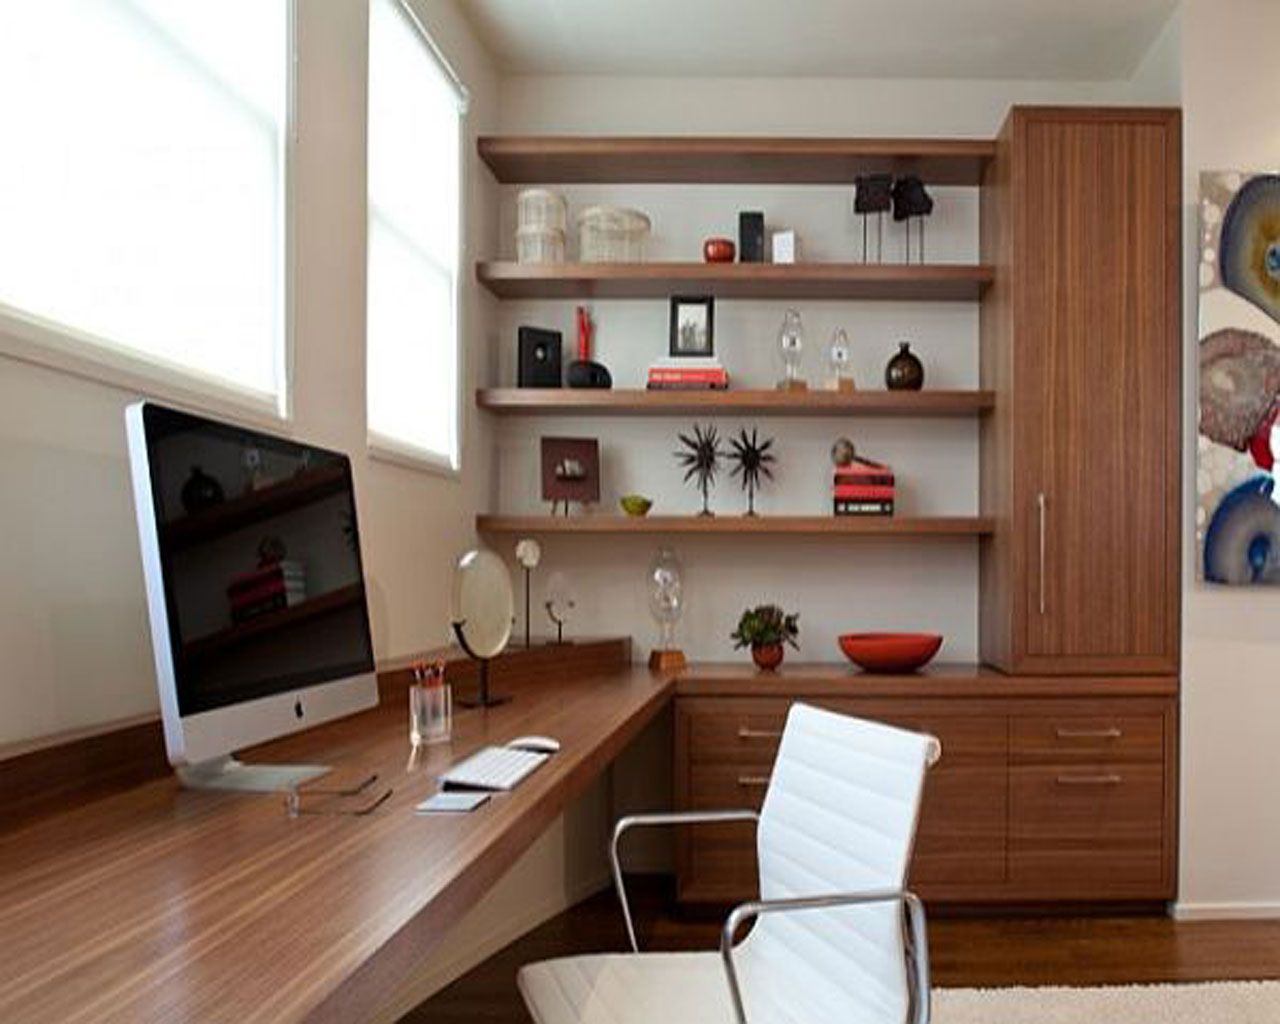 Delicieux Do You Want To Fit A Small #HomeOffice Into Your Small Home? It Can